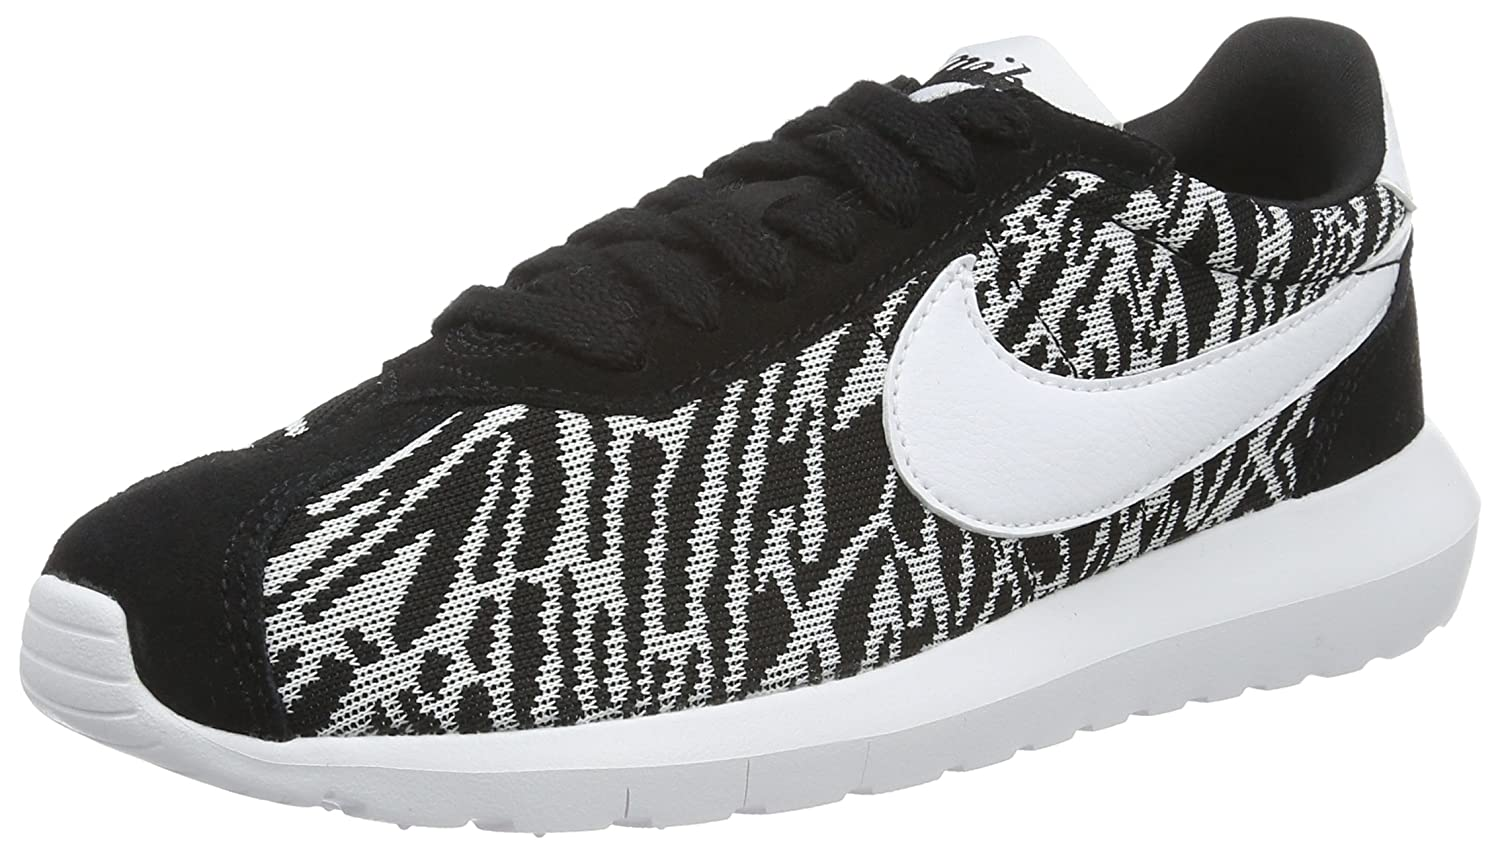 NIKE Women's Air Max Thea Low-Top Sneakers, Black B01ACXN0YM 9.5 B(M) US|Black / White